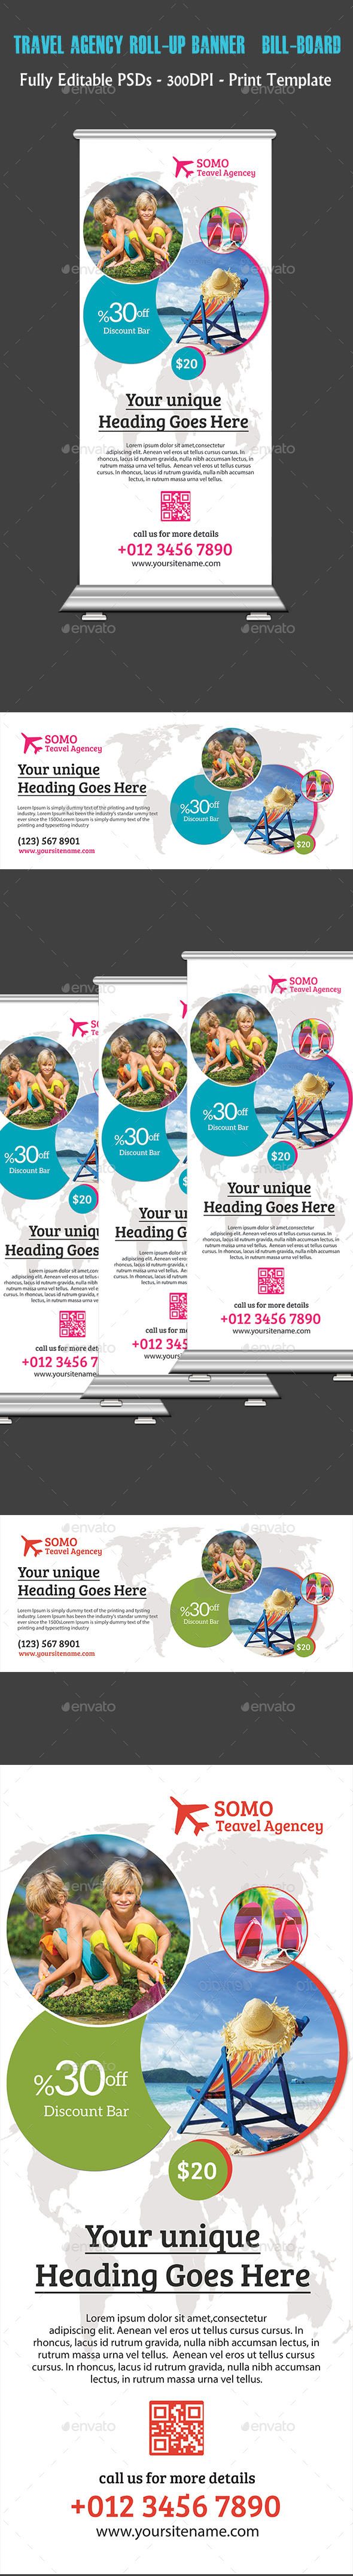 Travel Agency Roll-up Banner & Bill-board - Flyers Print Templates